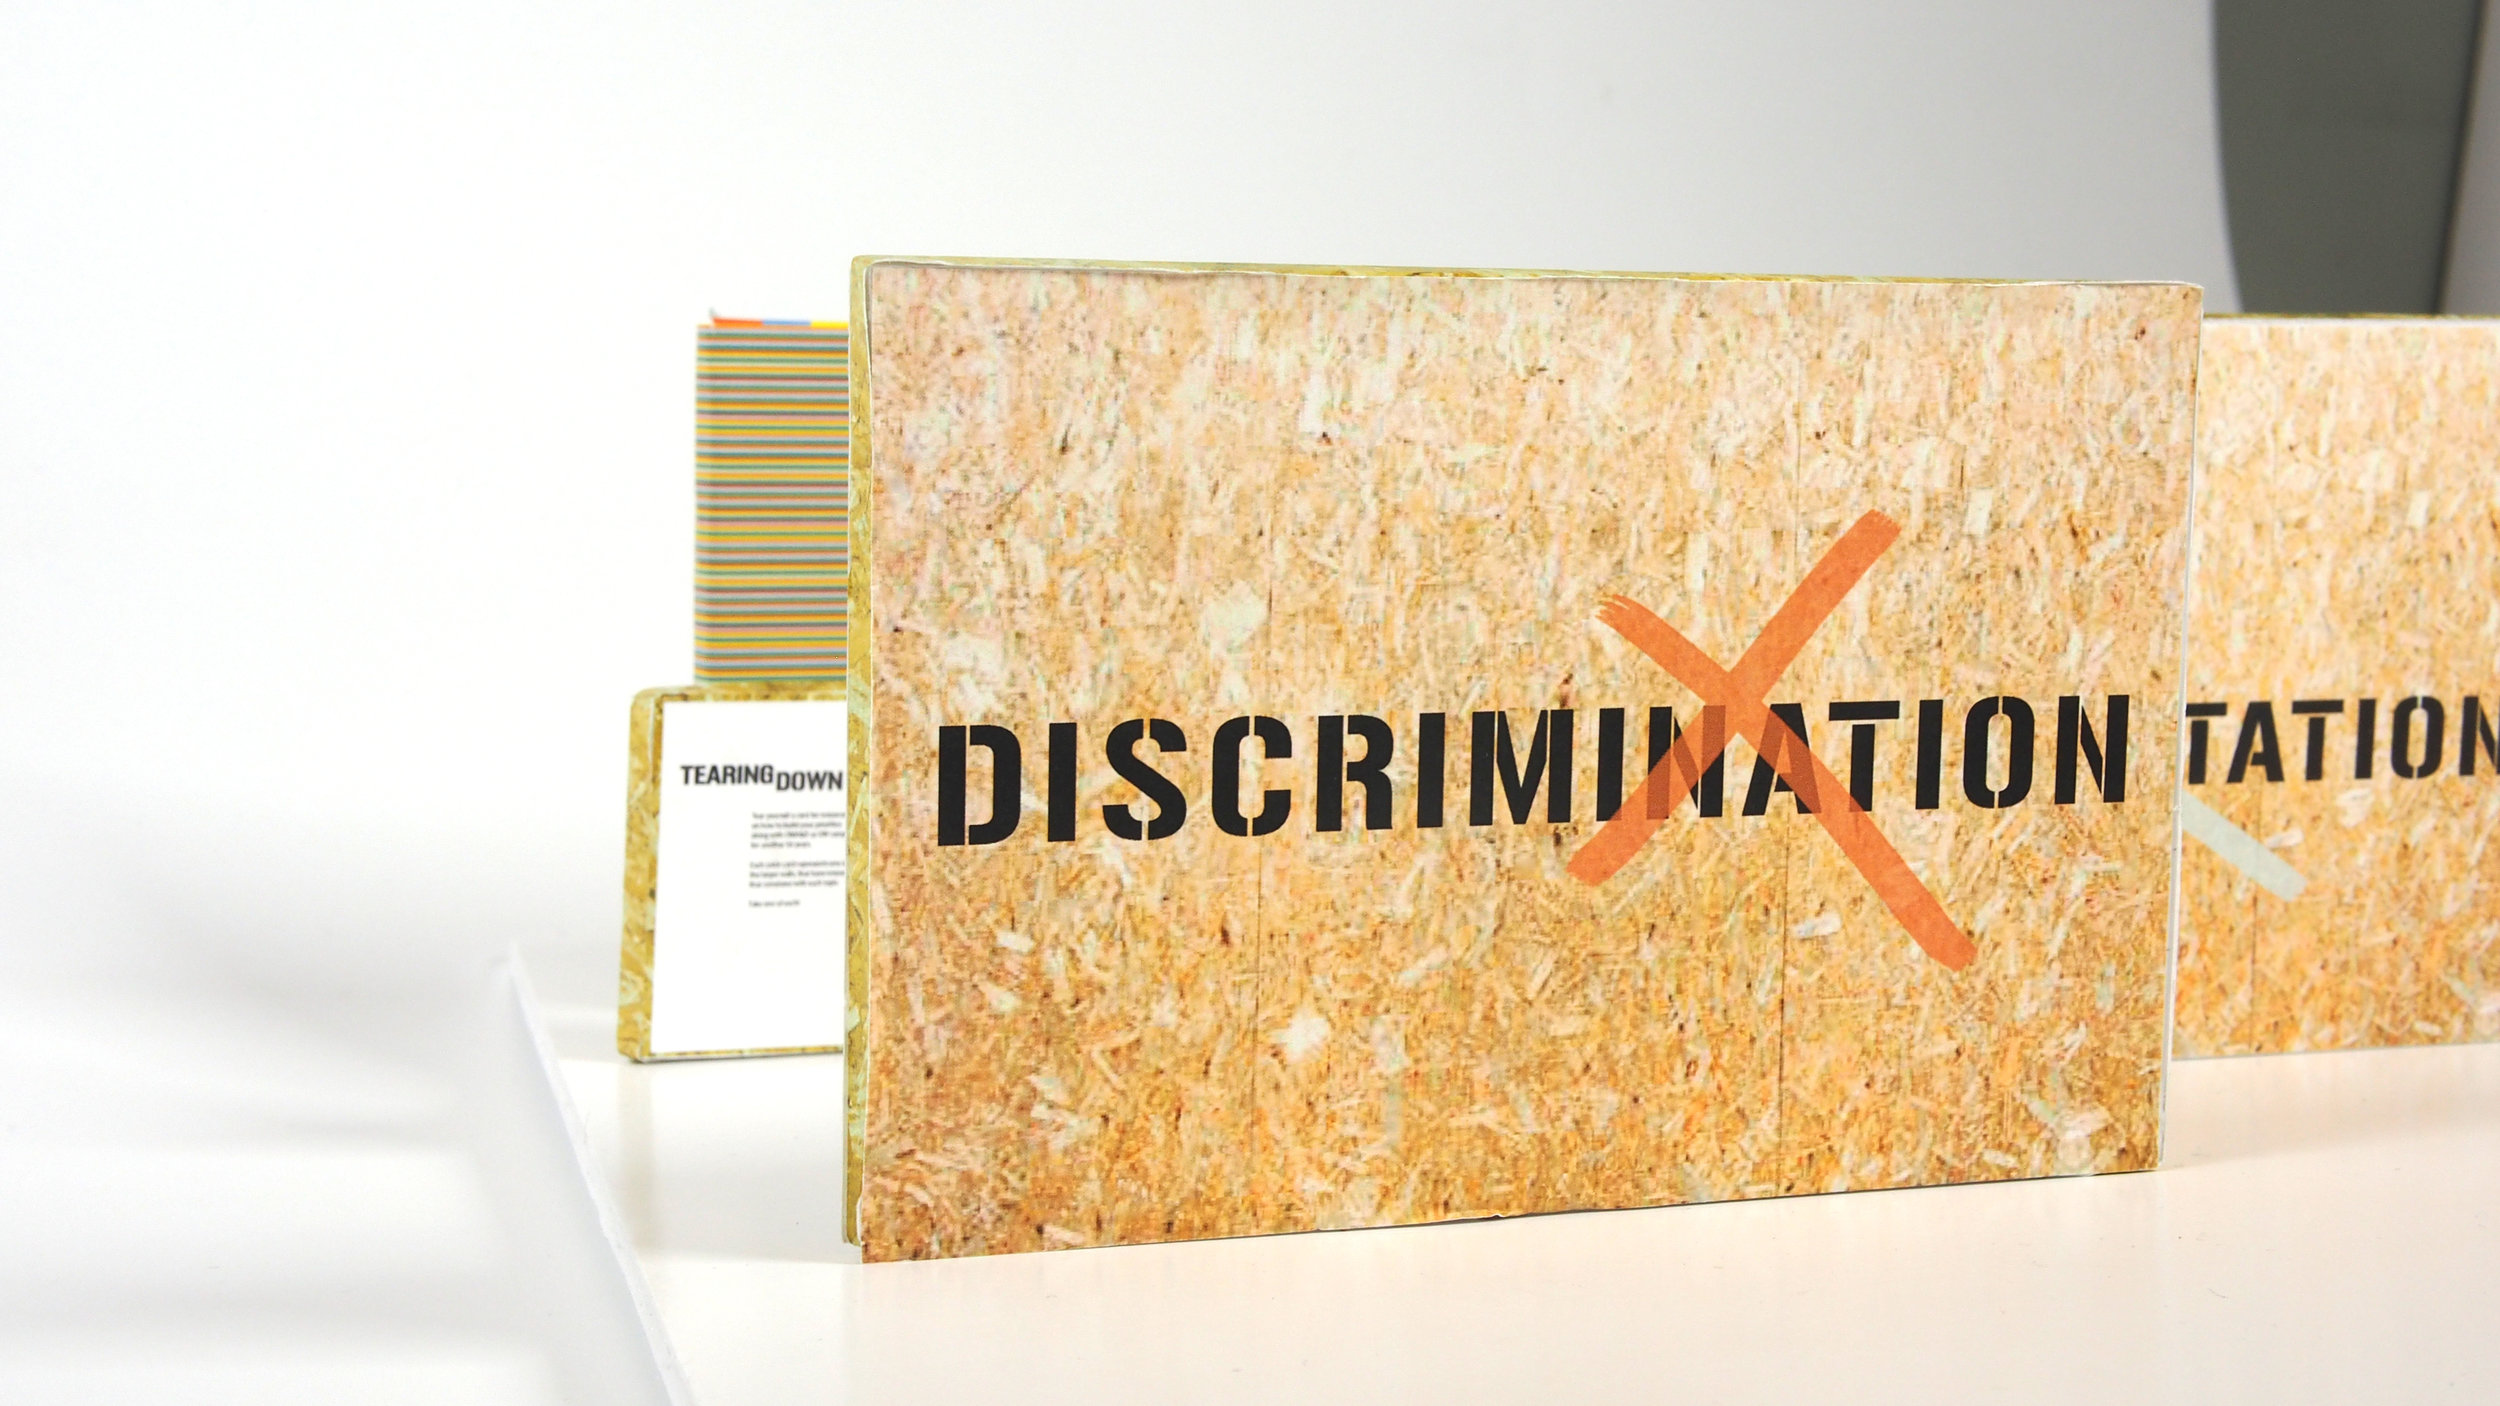 Tearing Down: Discrimination